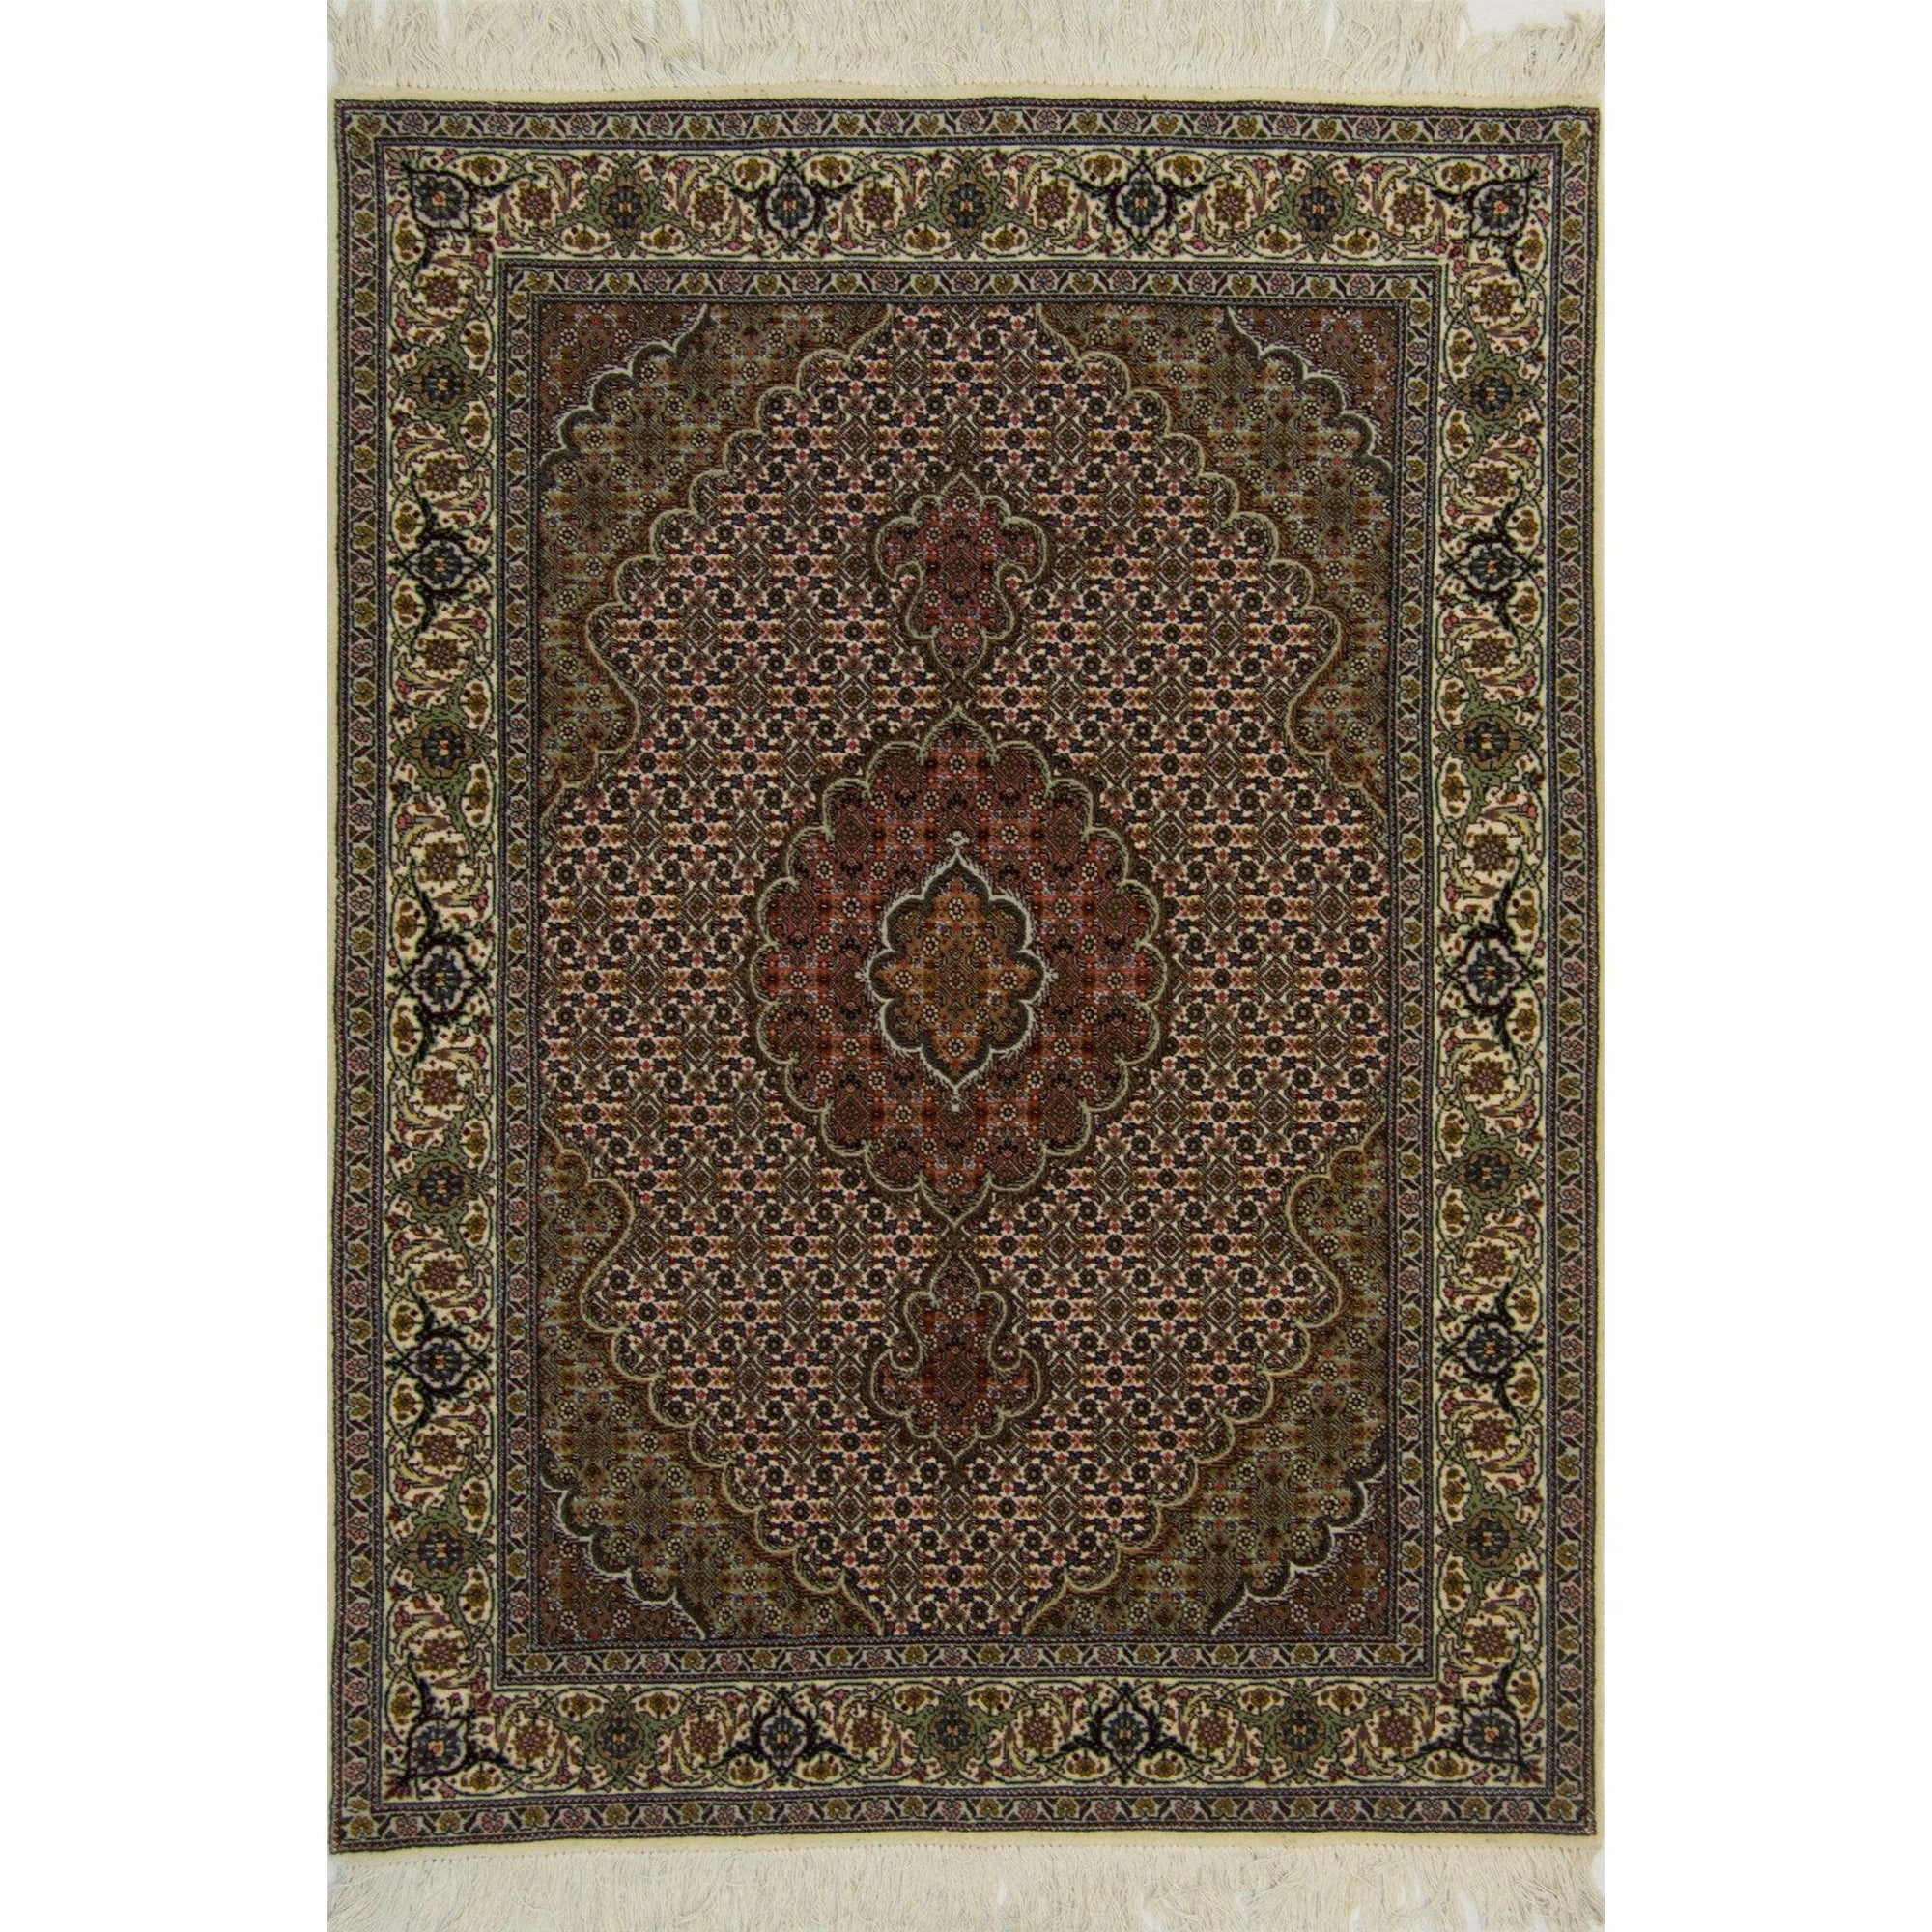 Fine Hand-knotted Persian Wool and Silk Tabriz - Mahi Design Rug 109cm x 148cm Persian-Rug | House-of-Haghi | NewMarket | Auckland | NZ | Handmade Persian Rugs | Hand Knotted Persian Rugs